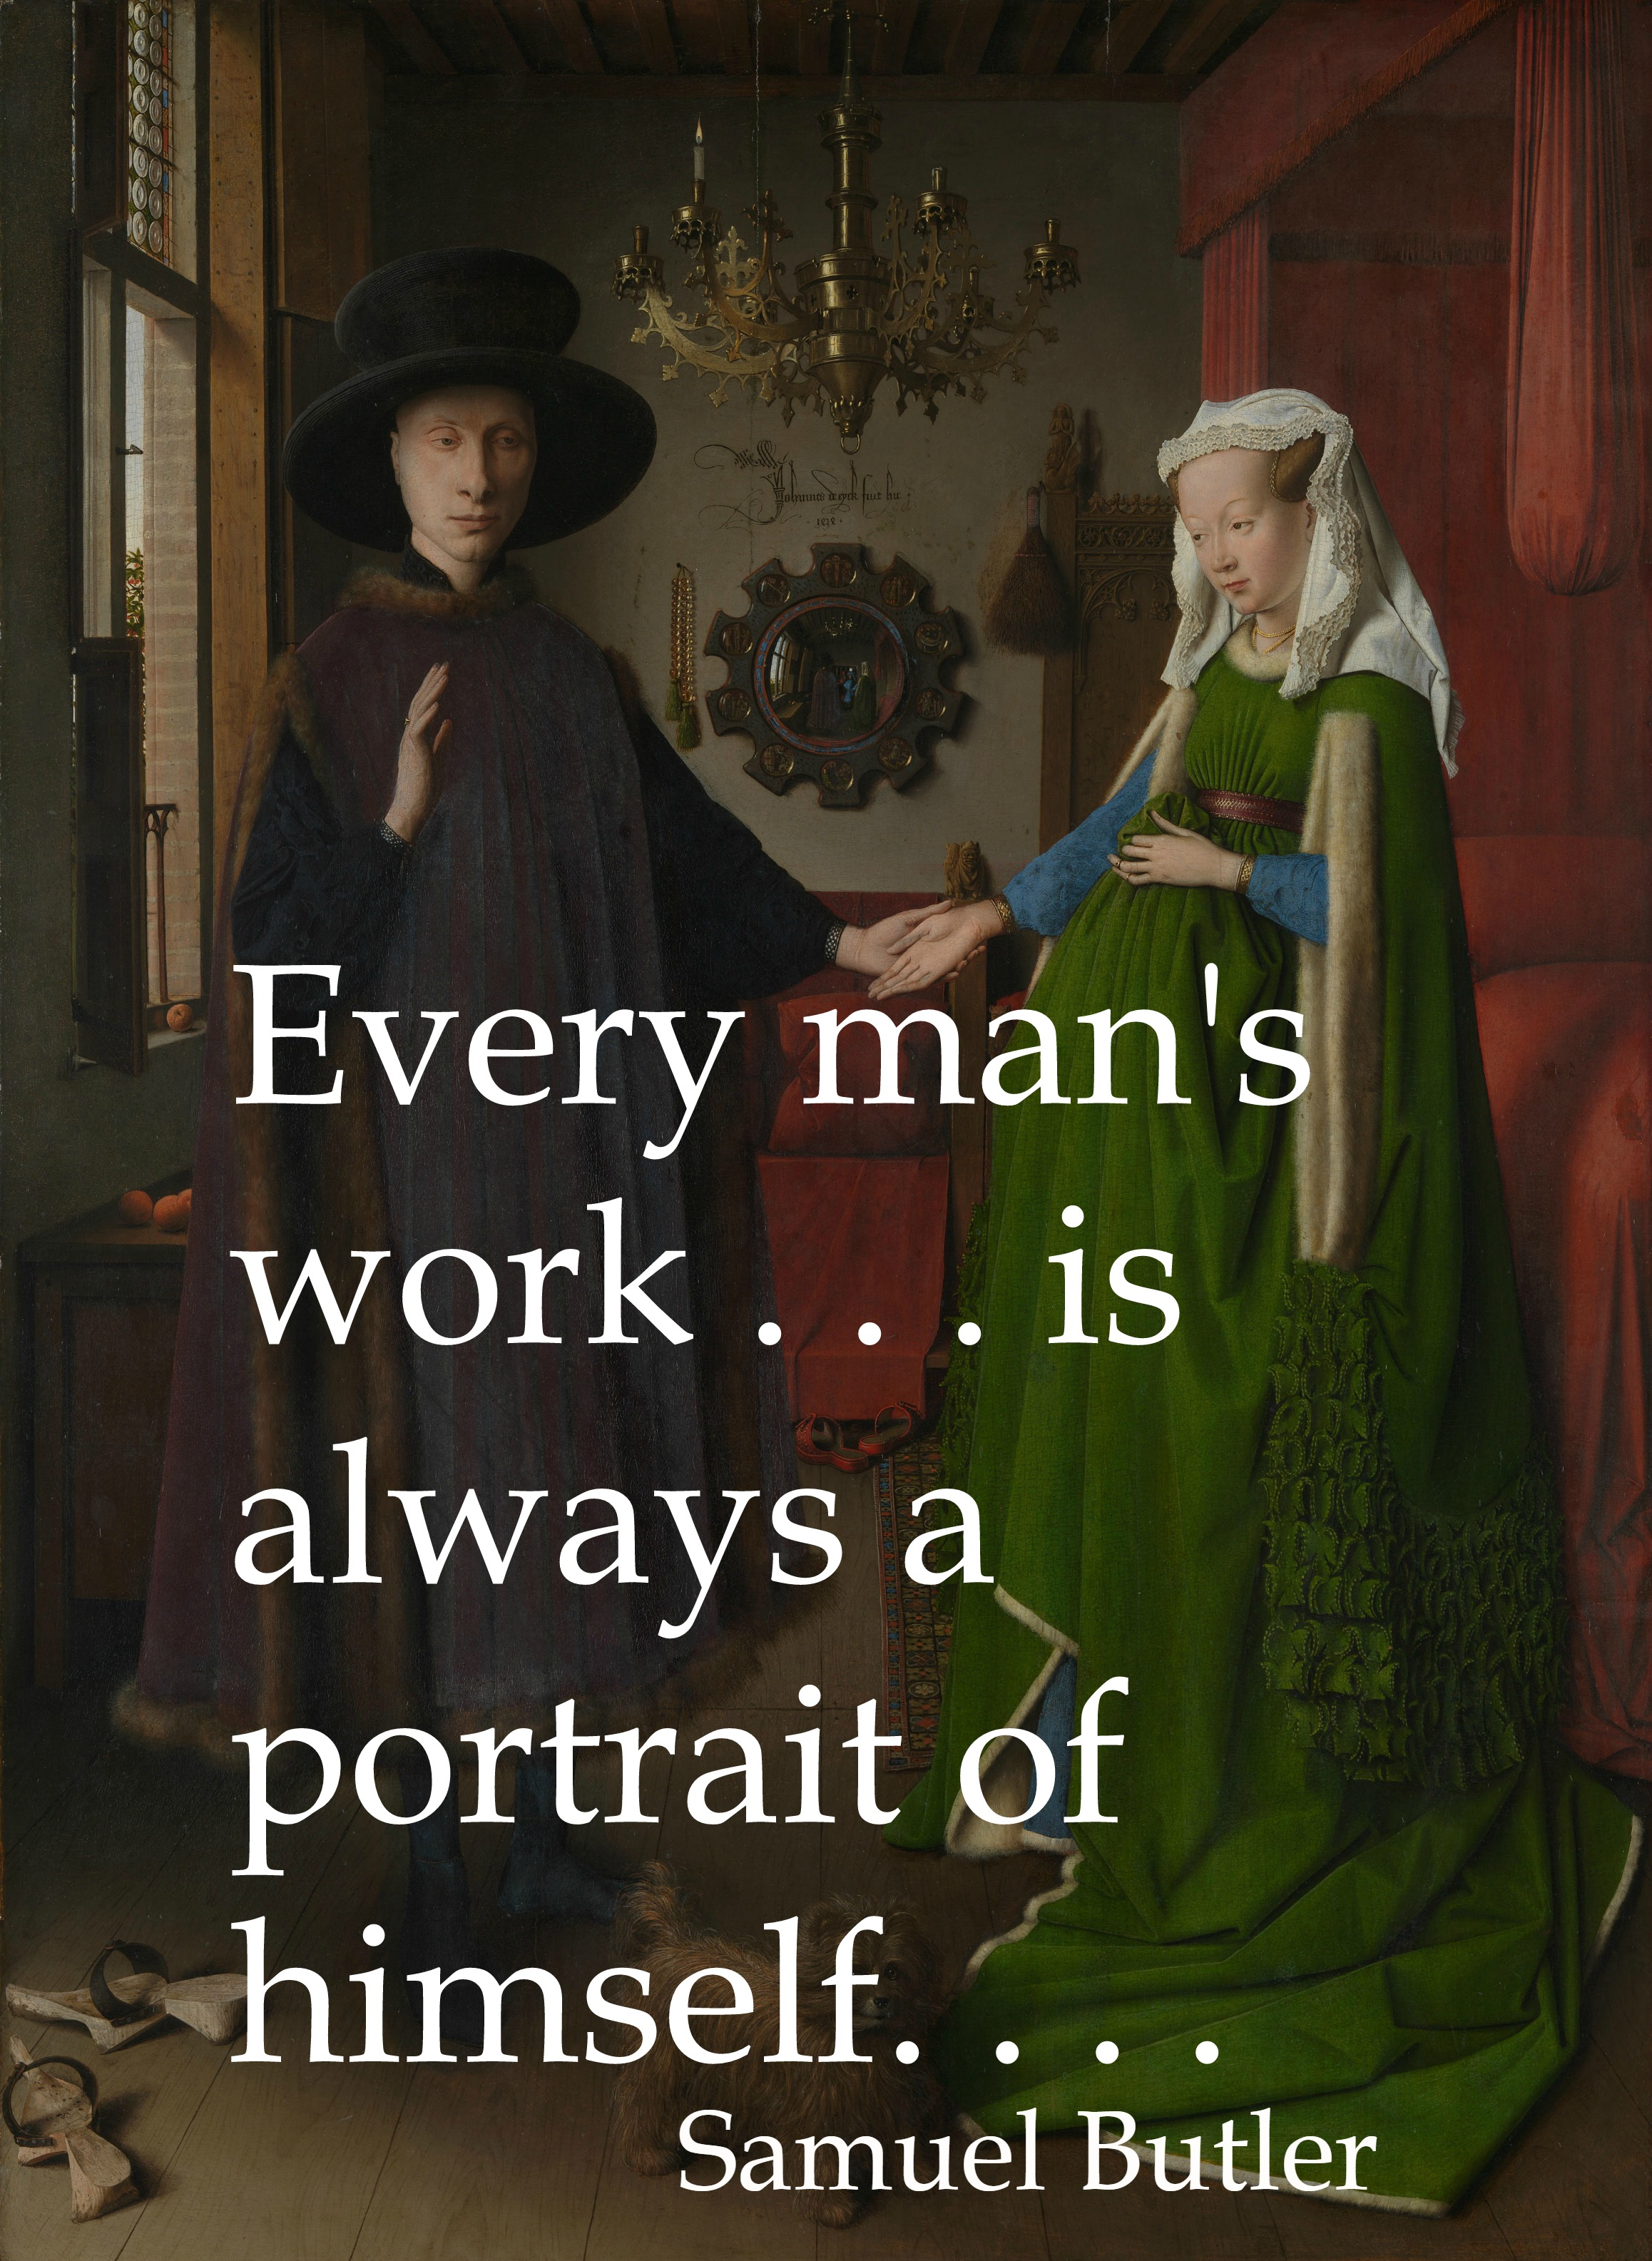 Writer's Quote Wednesday: Portrait of the Artist as a Middle-Aged Woman?